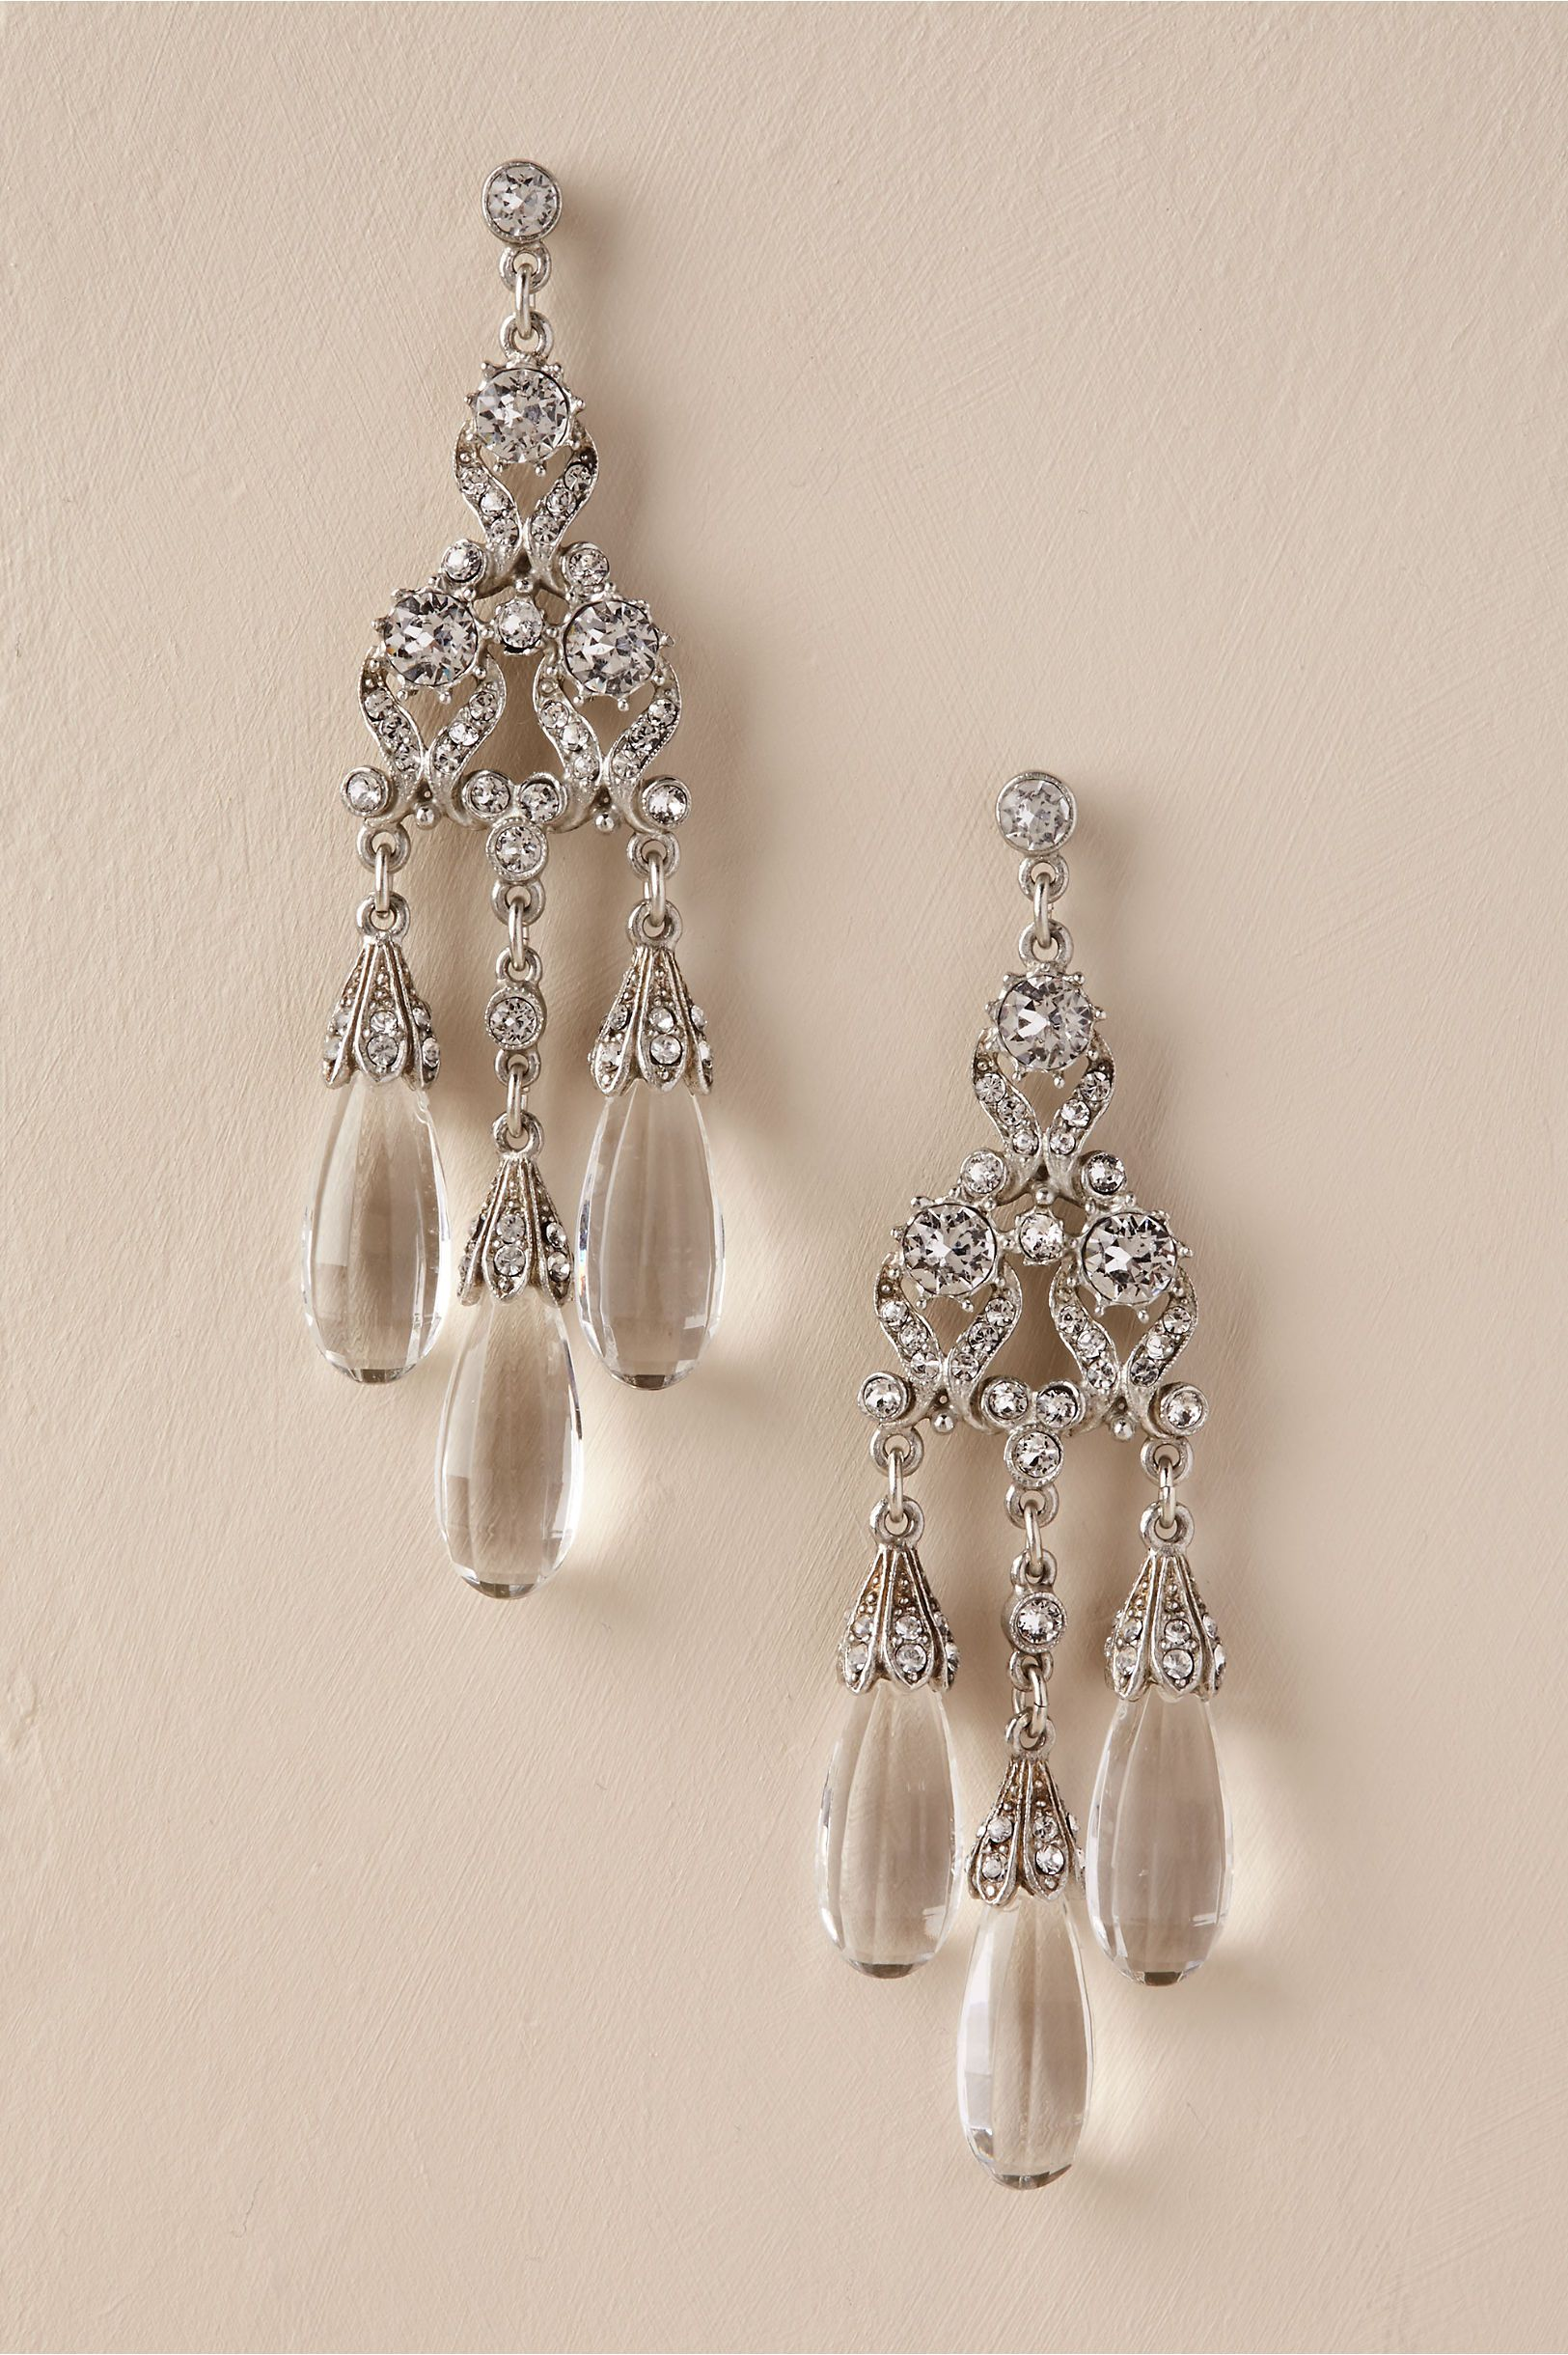 flynn boston shop m rings chandelier engagement earrings yellow custom jewellery